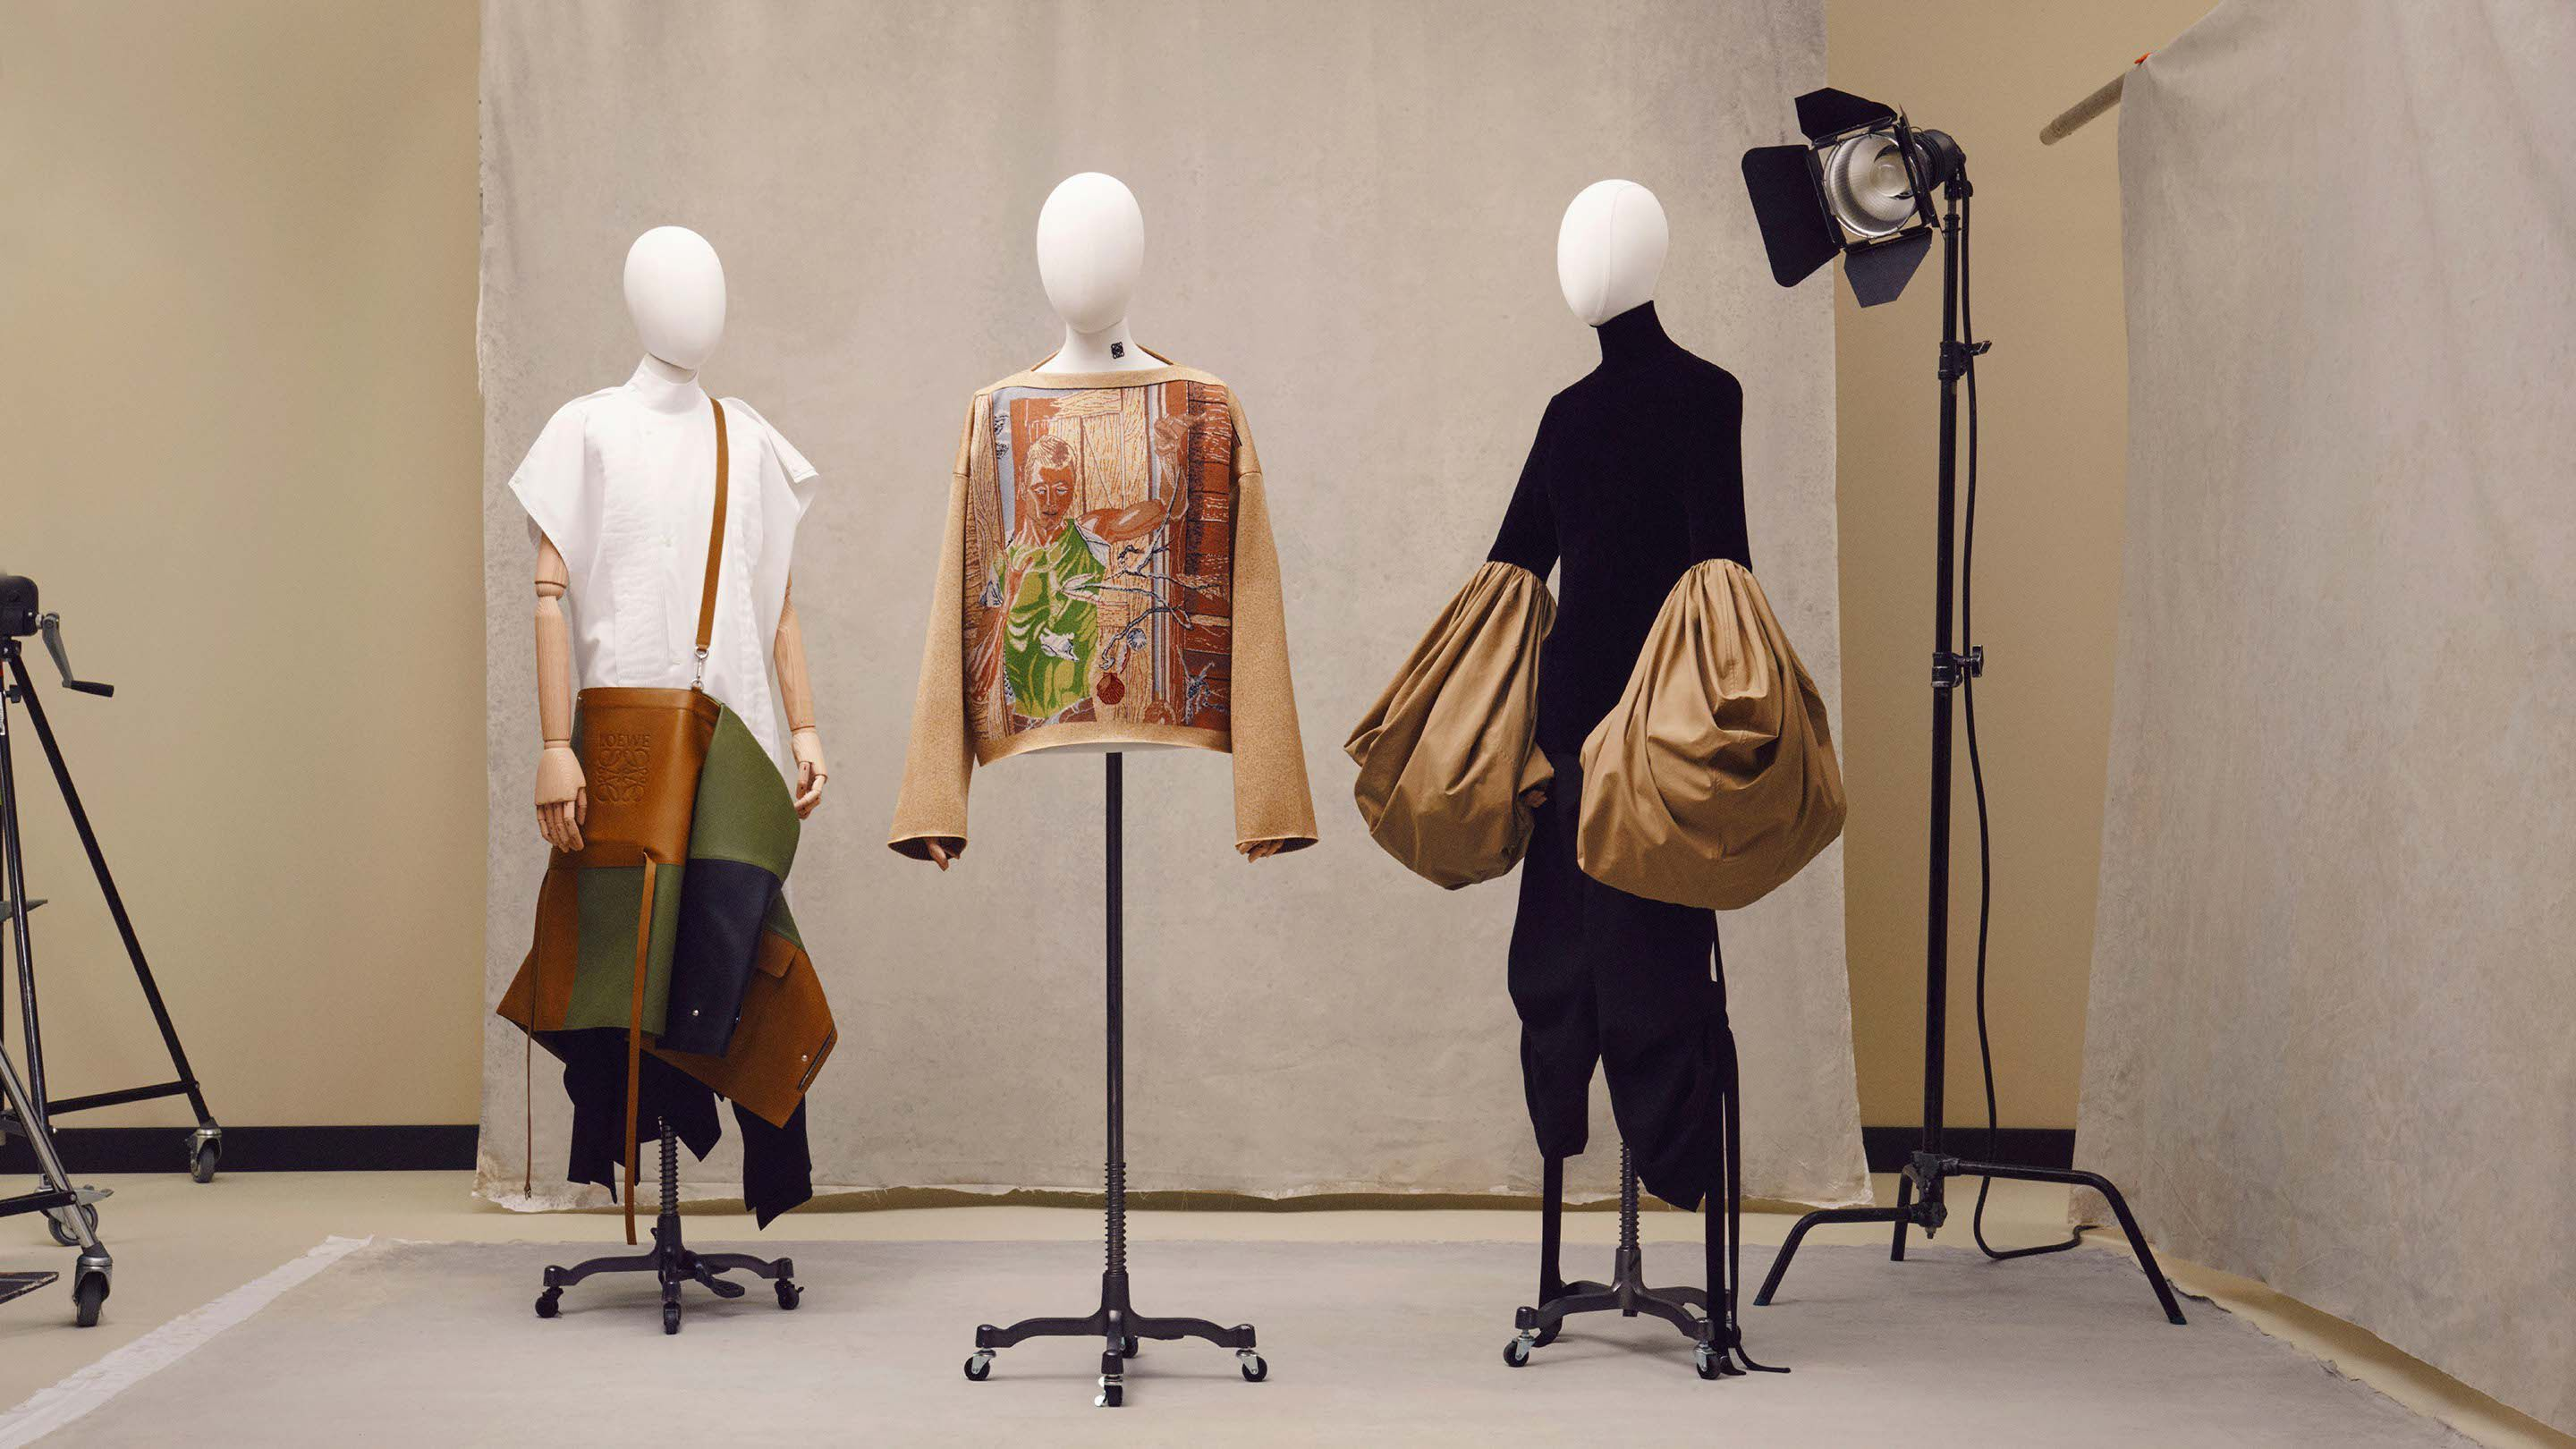 When bag and clothing became one.